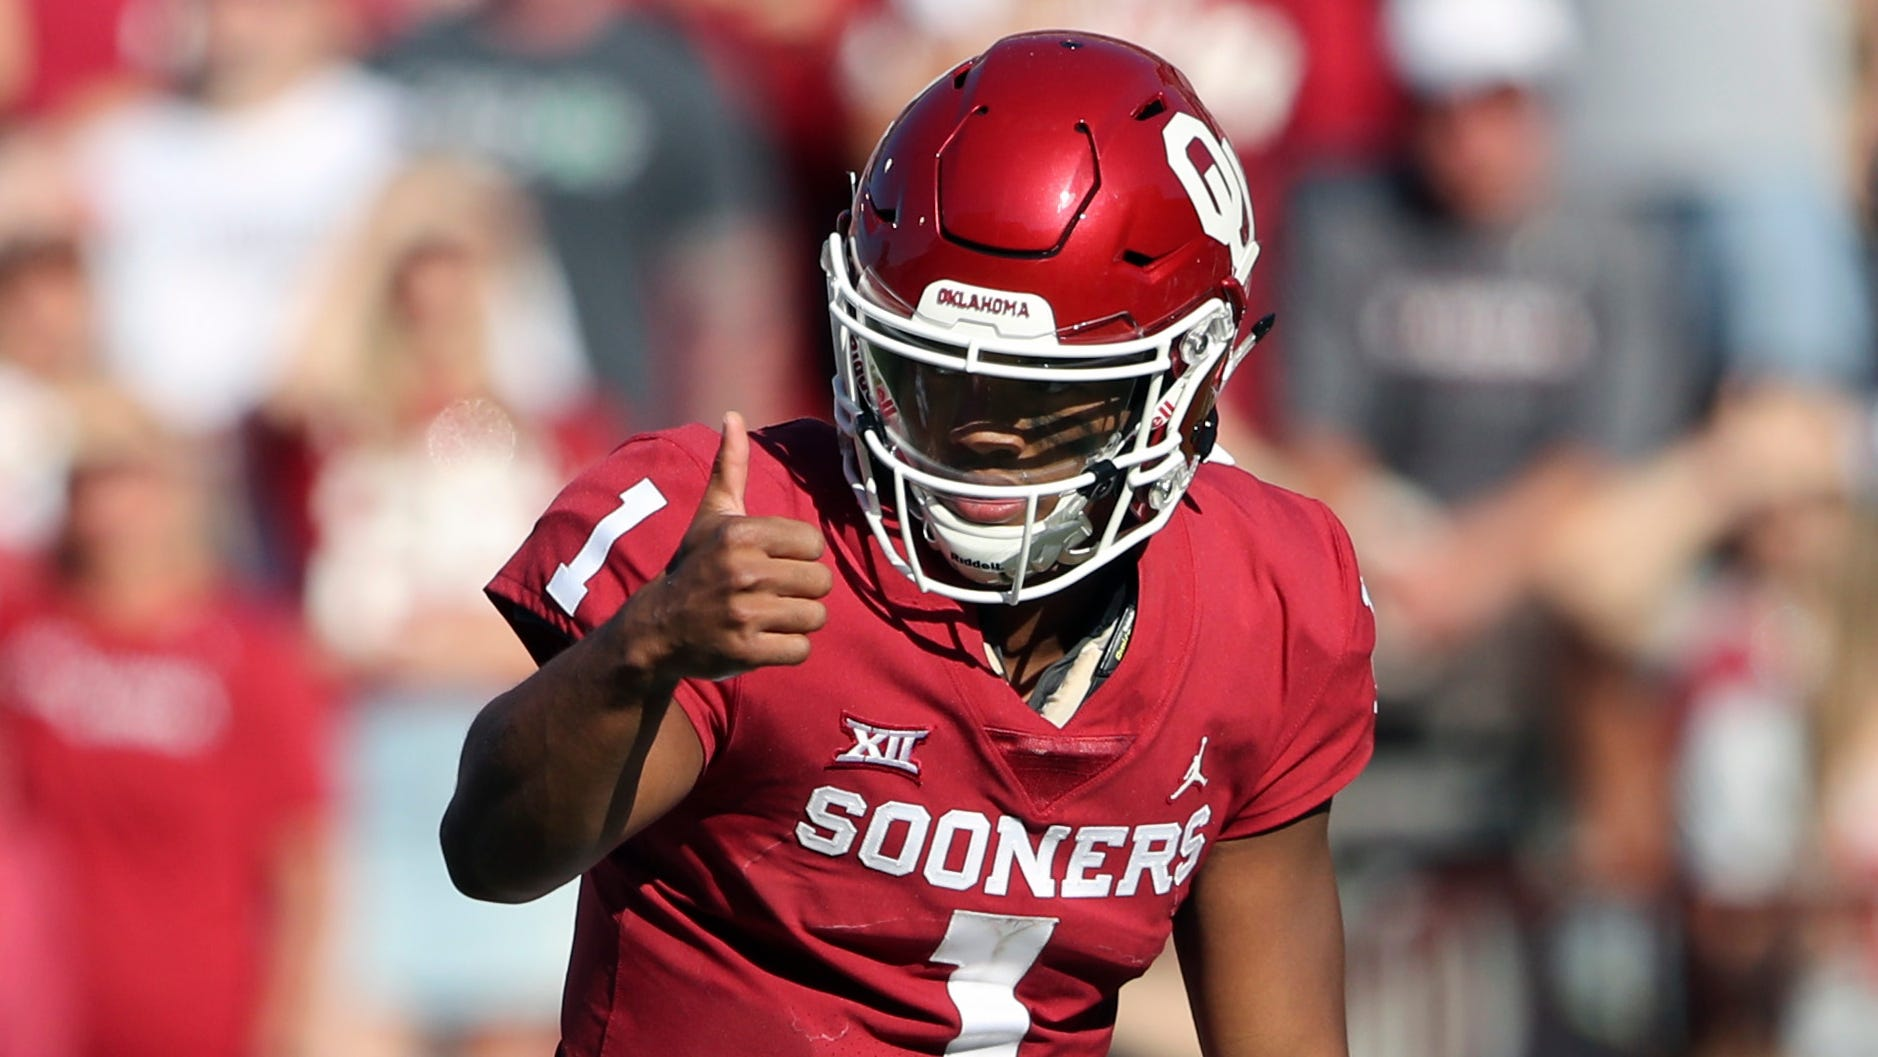 It's still unclear whether Kyler Murray will pursue football or baseball, but the Heisman Trophy winner has made himself available for the NFL draft.